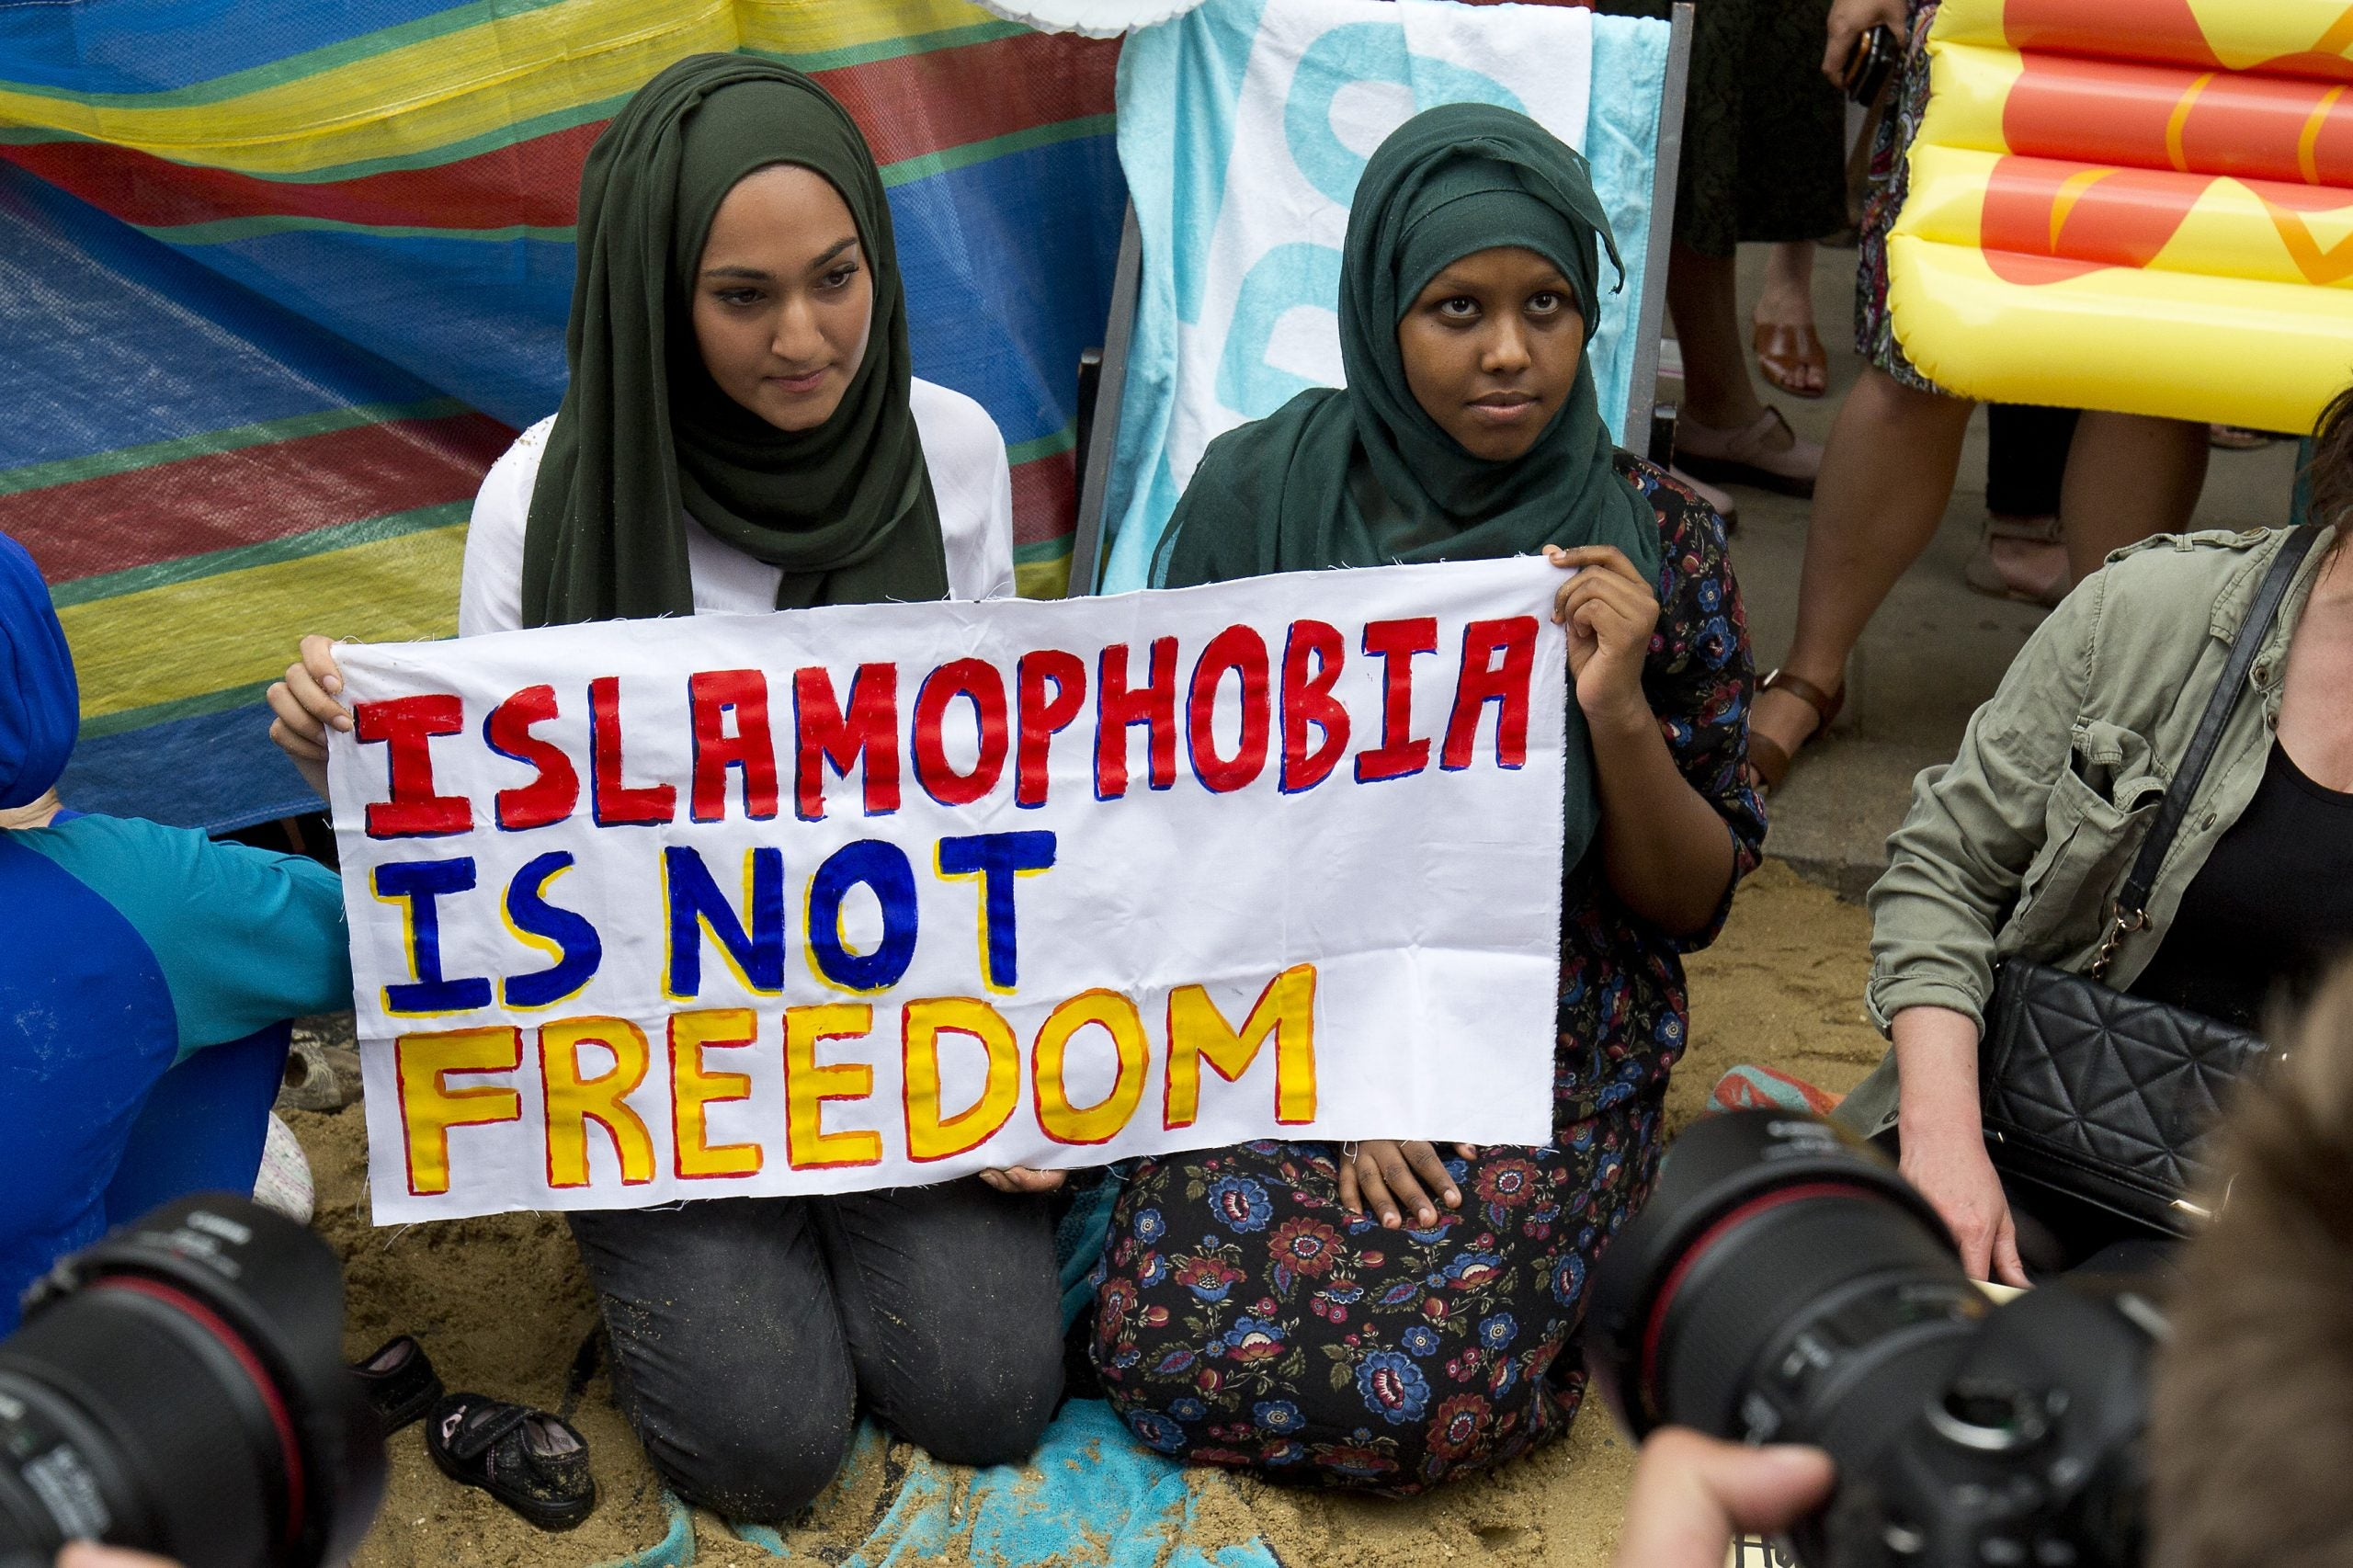 The Conservative party has an institutional Islamophobia problem